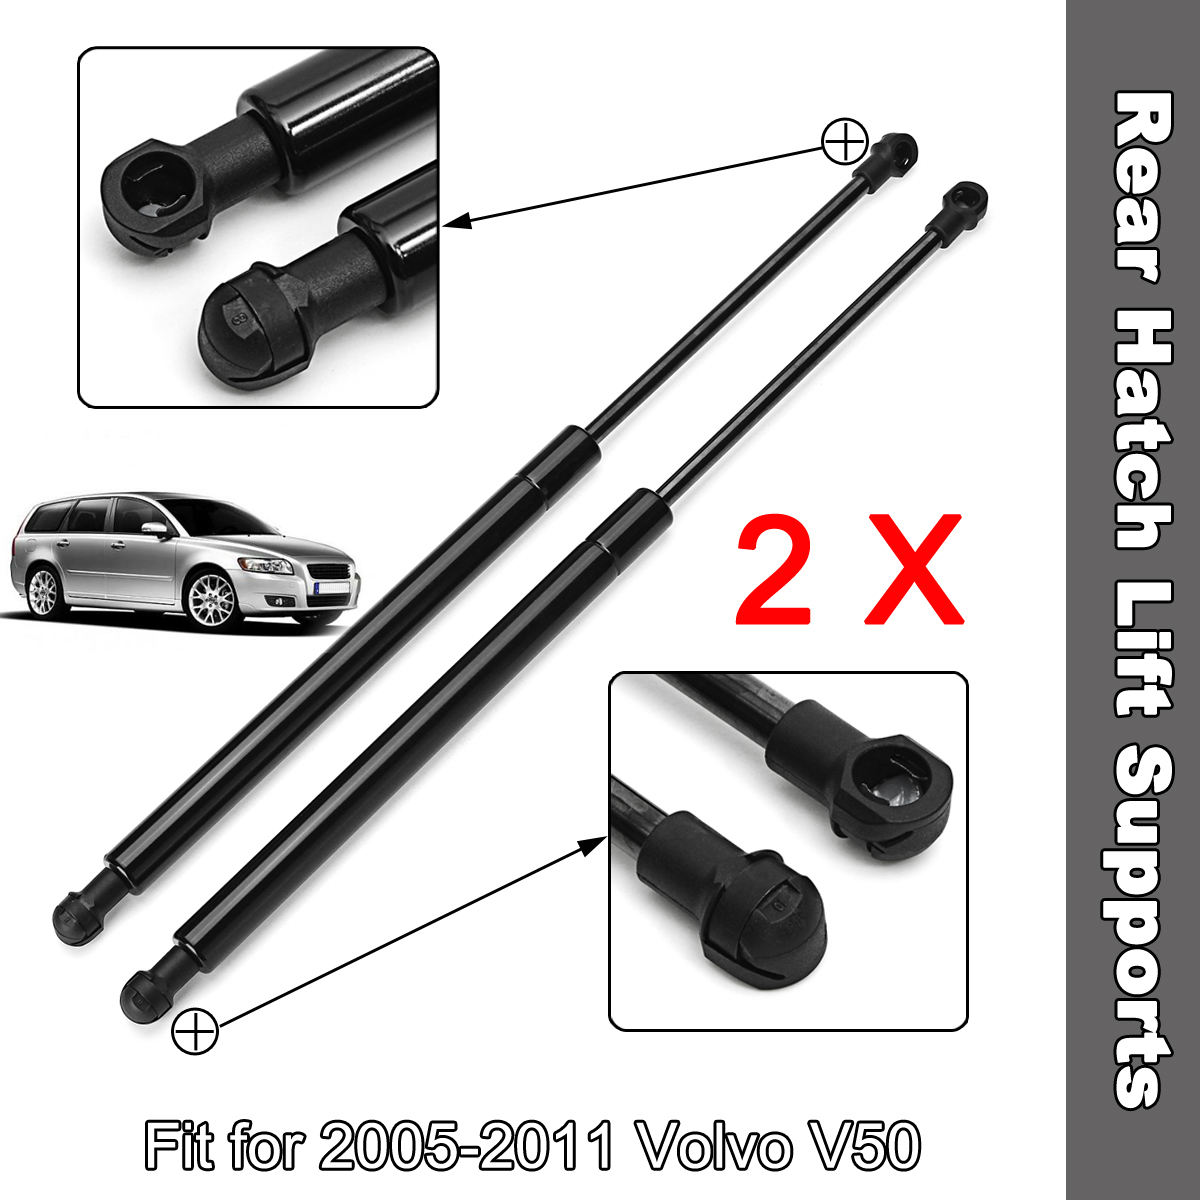 Liftgate Tail Gate Door Hatch Supports Shocks For Volvo V50 2005 2006 2007 2008 2009 2010 2011 Tailgate Boot Gas Struts Spring